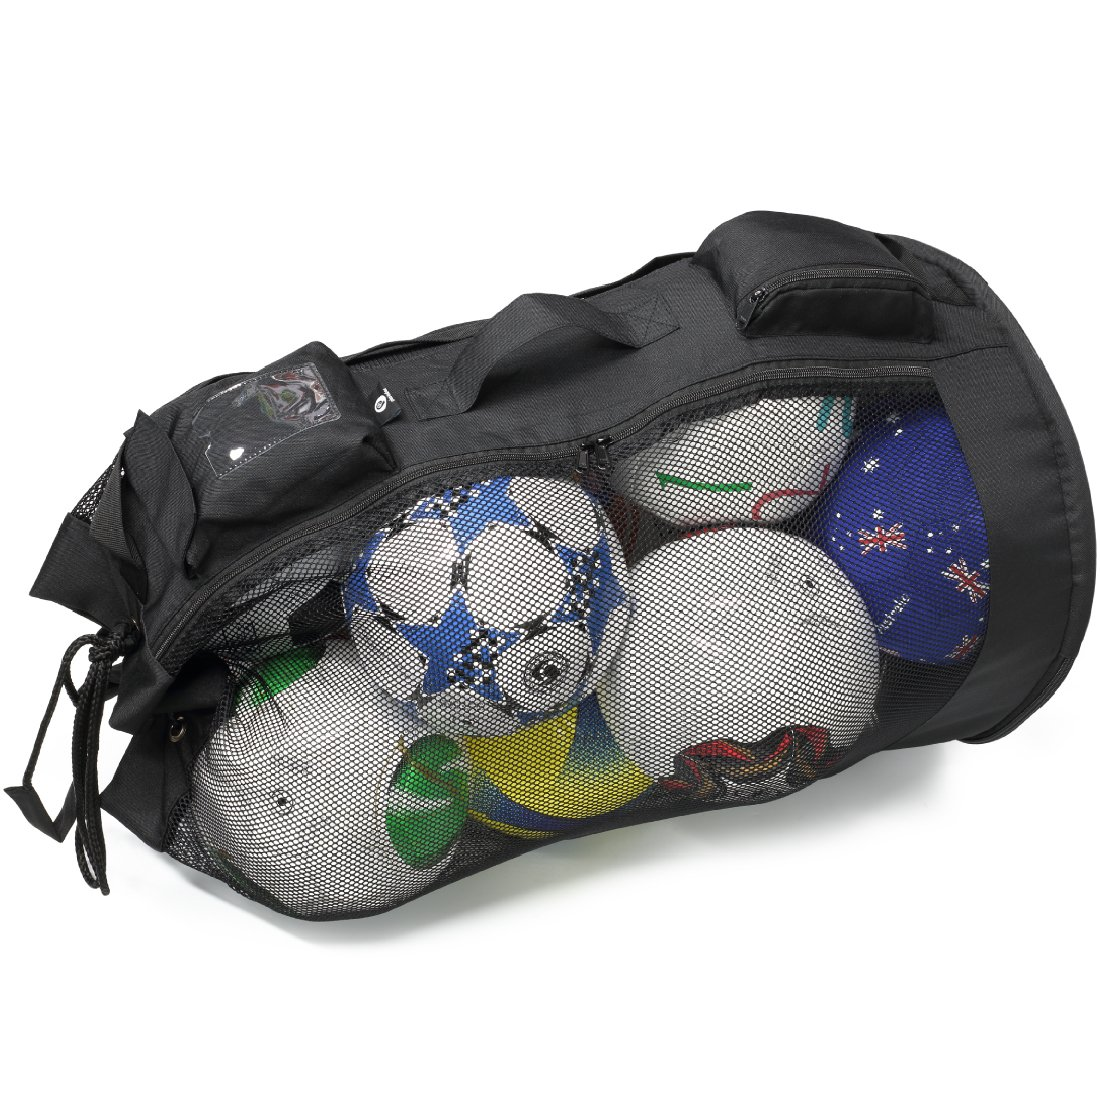 PP PICADOR Mesh Equipment Bag for Soccer Ball Drawstring and Zipper, Sports Mesh Ball Bag Oversize Duffle Reinforced Bottom Folding Portable by PP PICADOR (Image #1)